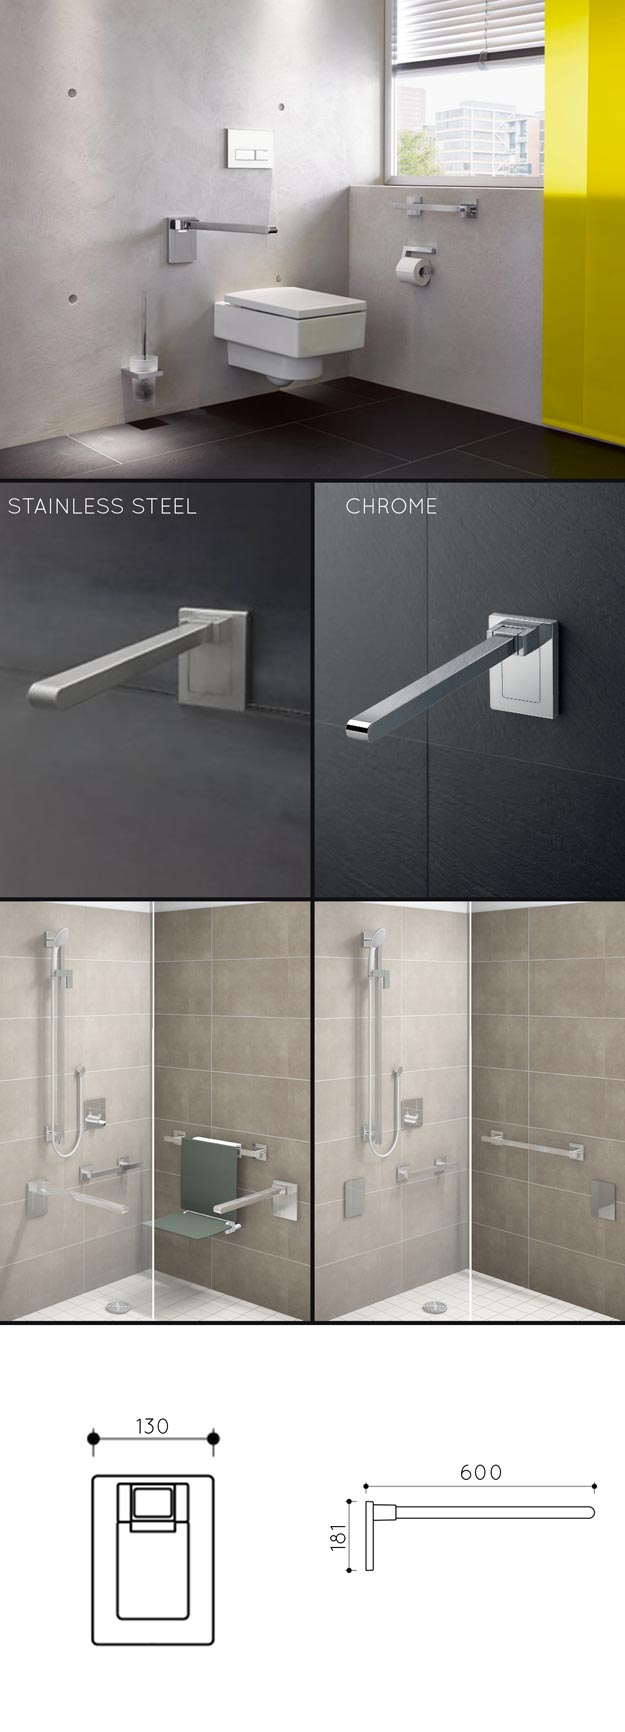 Folding Toilet Grab Bars & Removable Support Rails - Disabled